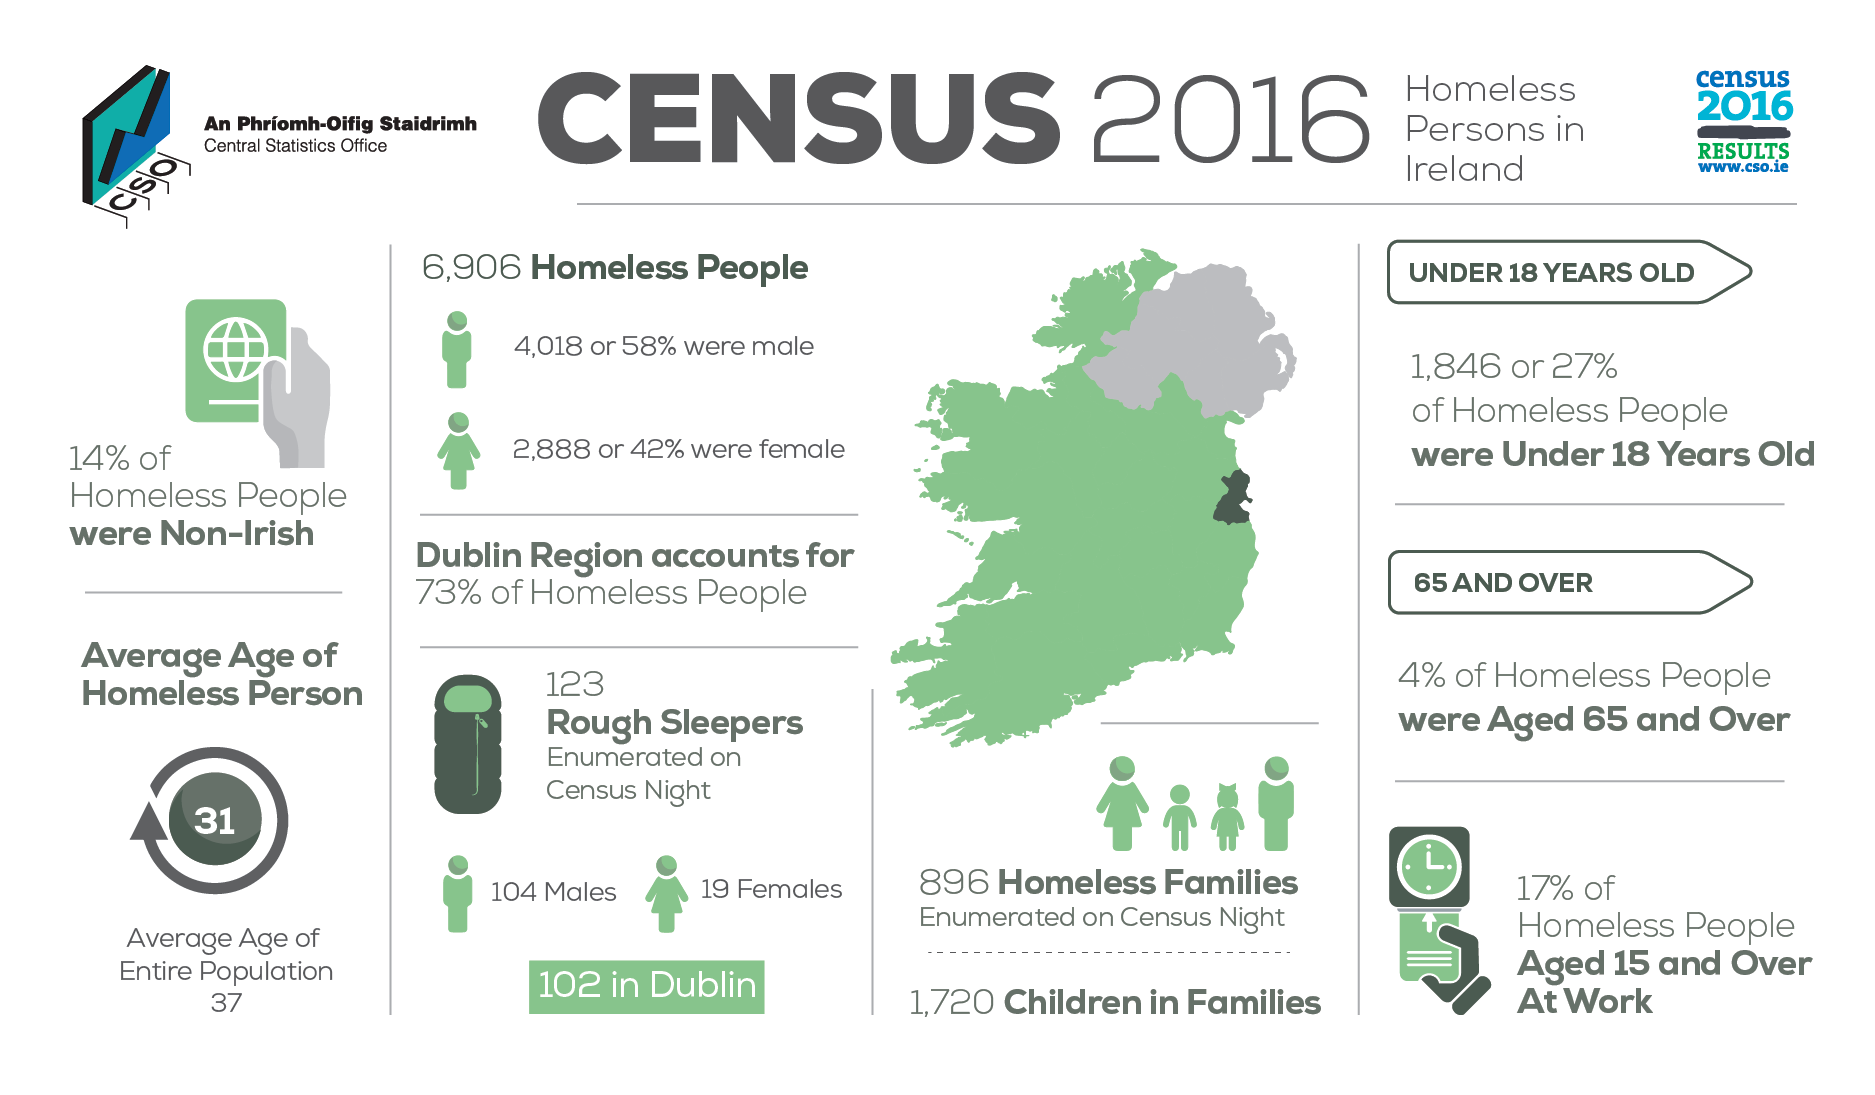 https://www.cso.ie/en/media/csoie/visualisationtools/infographics/census/2016/CSO-CENSUS_-_Homeless_Persons_in_Ireland_Final_1875_x_1095_72dpi.png